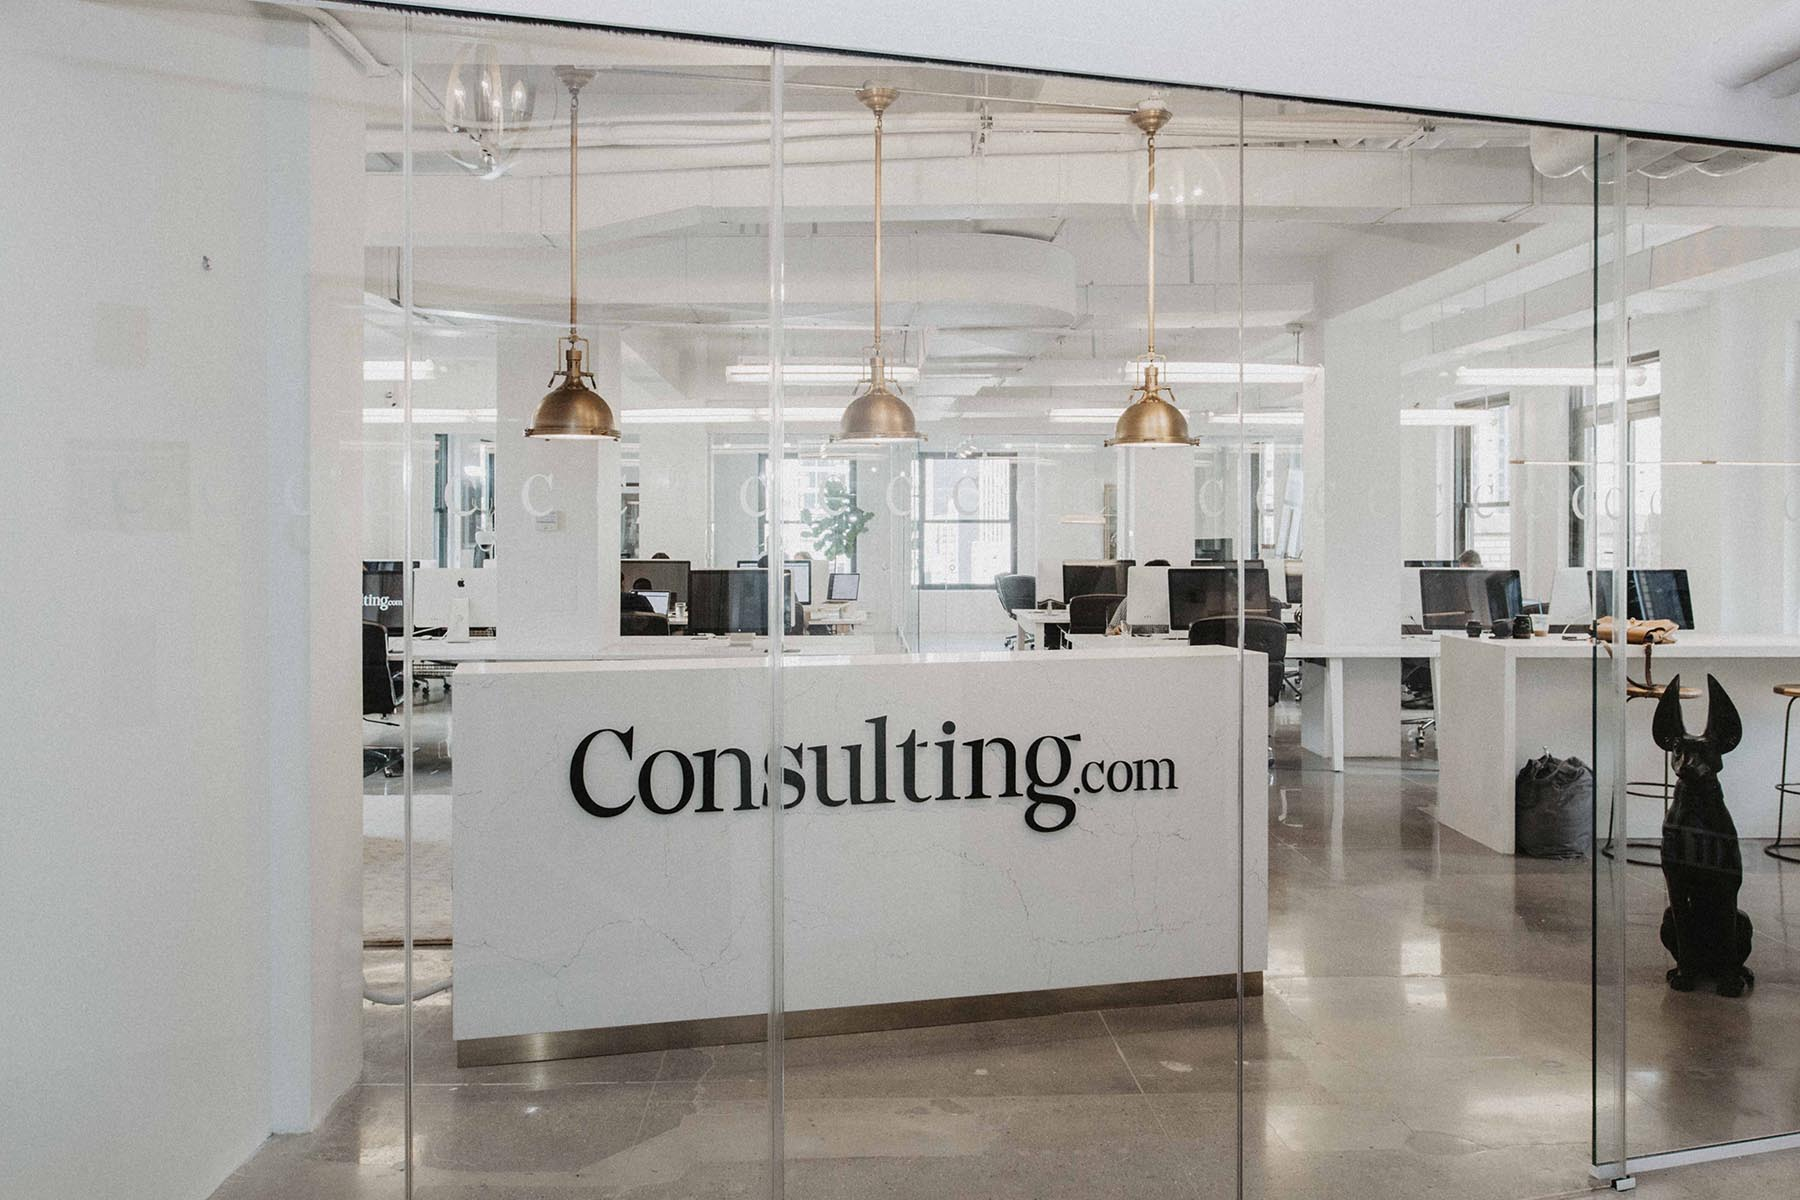 Consulting.com office